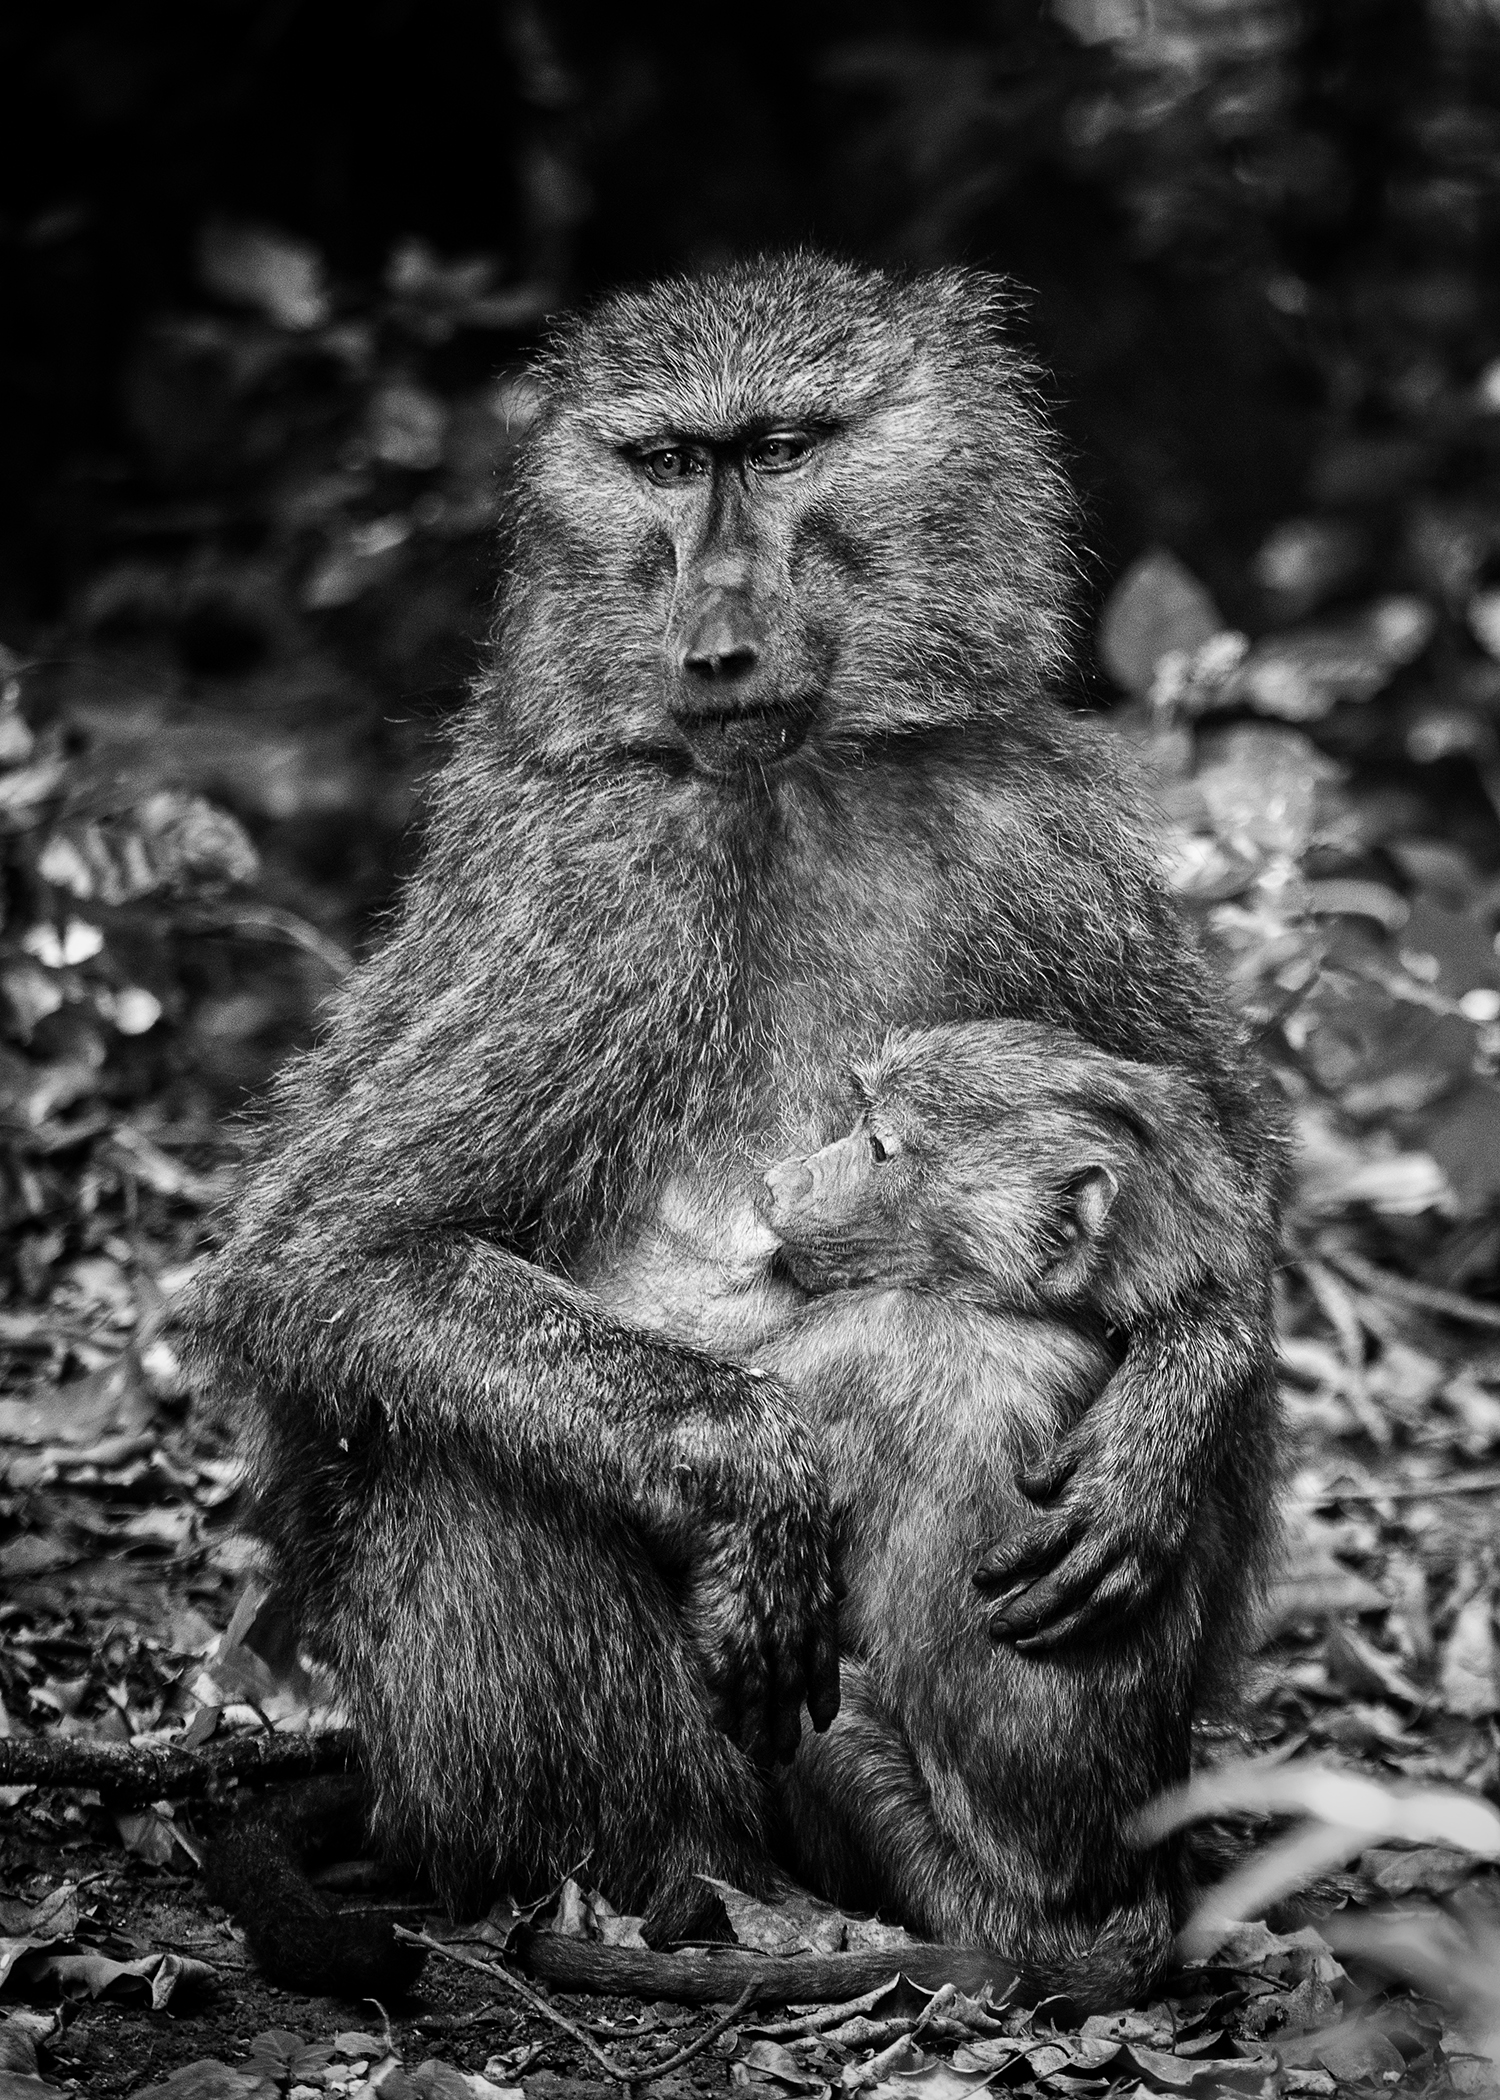 Another mother baboon breast feeding her young